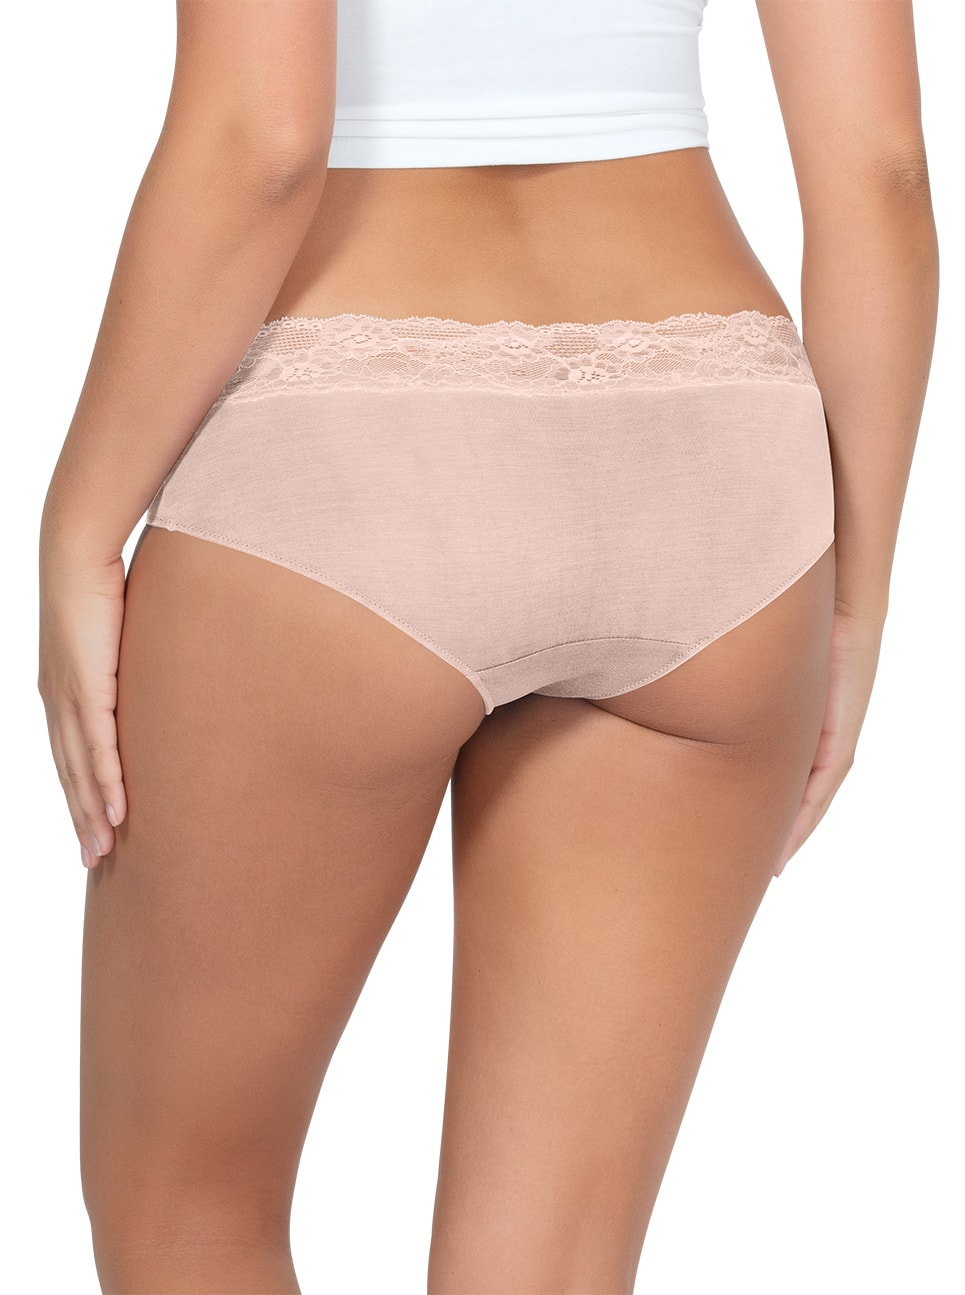 PARFAIT ParfaitPanty SoEssential HipsterPP503 Bare Back - Parfait Panty So Essential Hipster - Bare- PP503